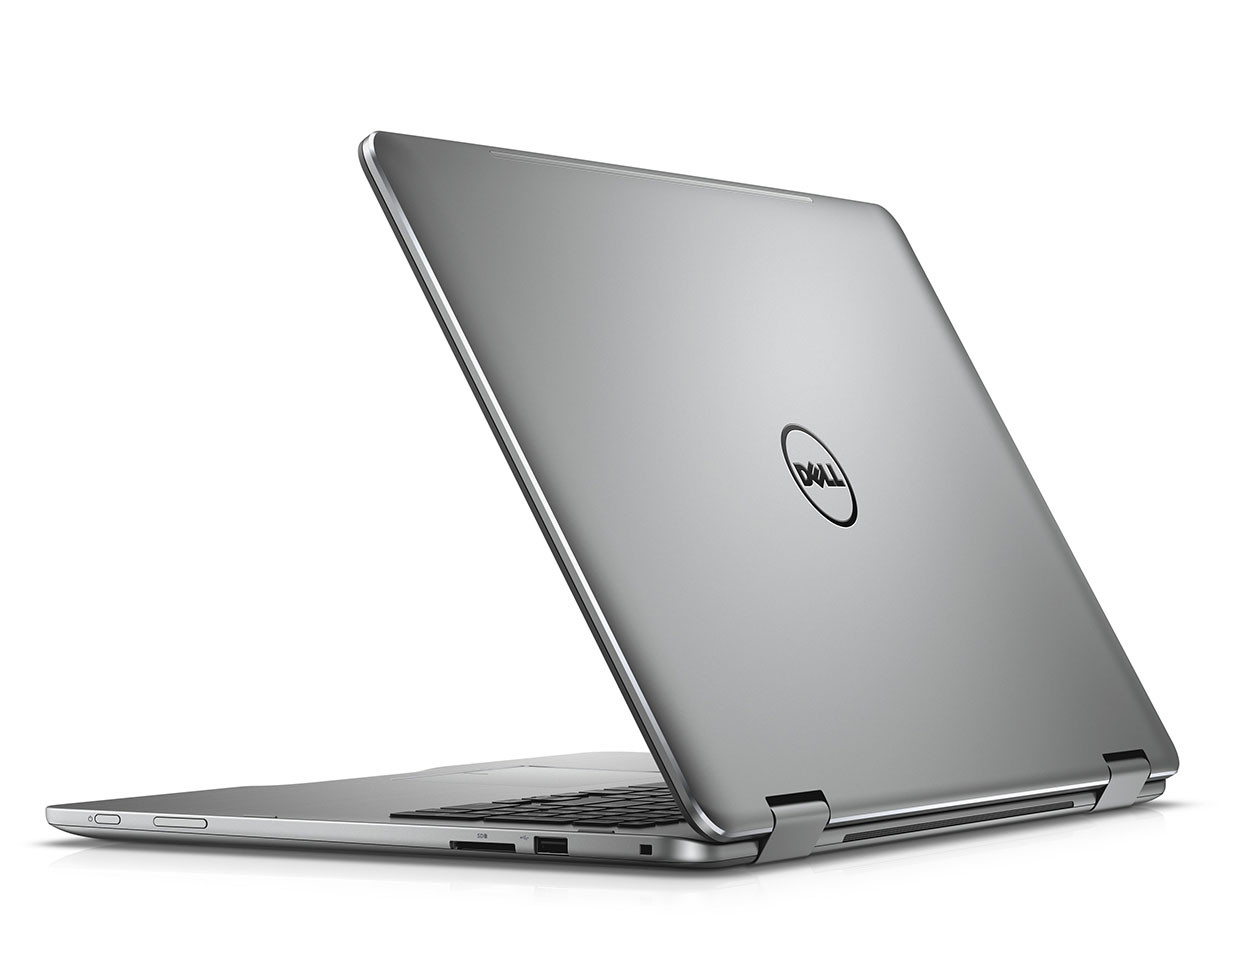 Dell Unveils New Laptops, 2-in-1s, and a Mixed Reality Headset